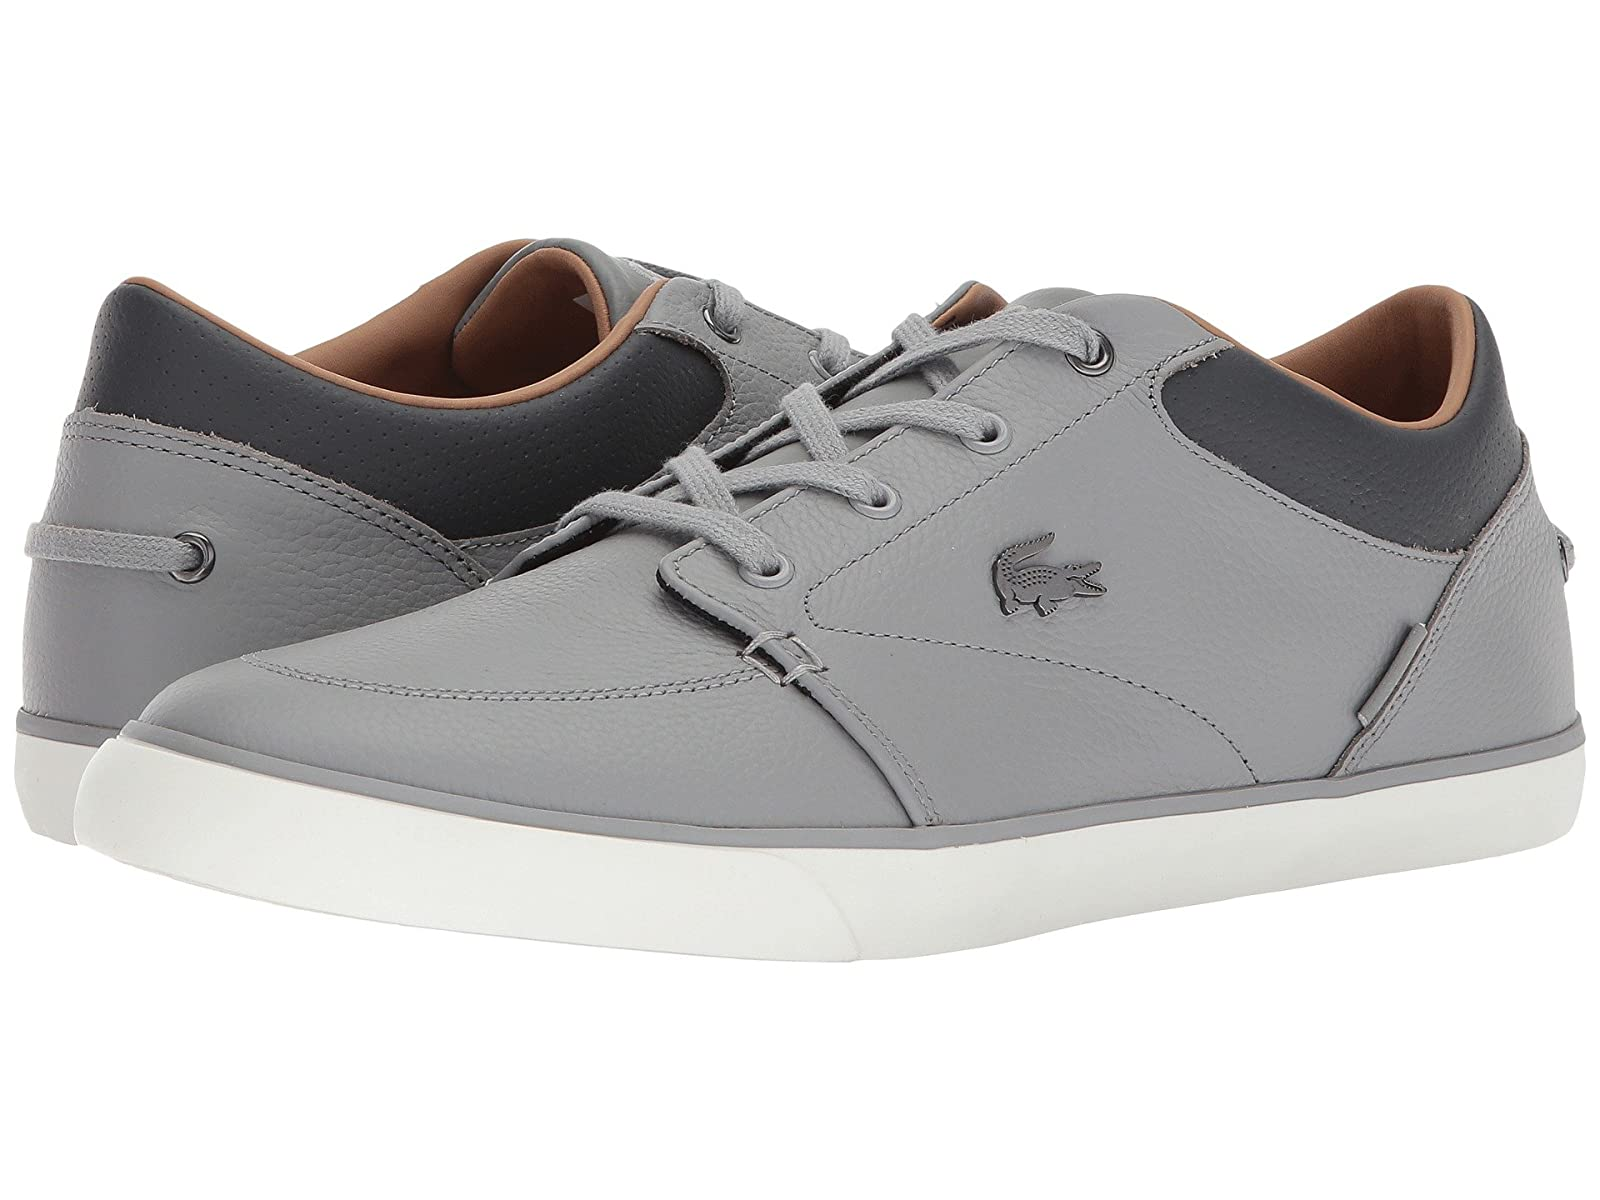 Lacoste Bayliss 118 1Atmospheric grades have affordable shoes